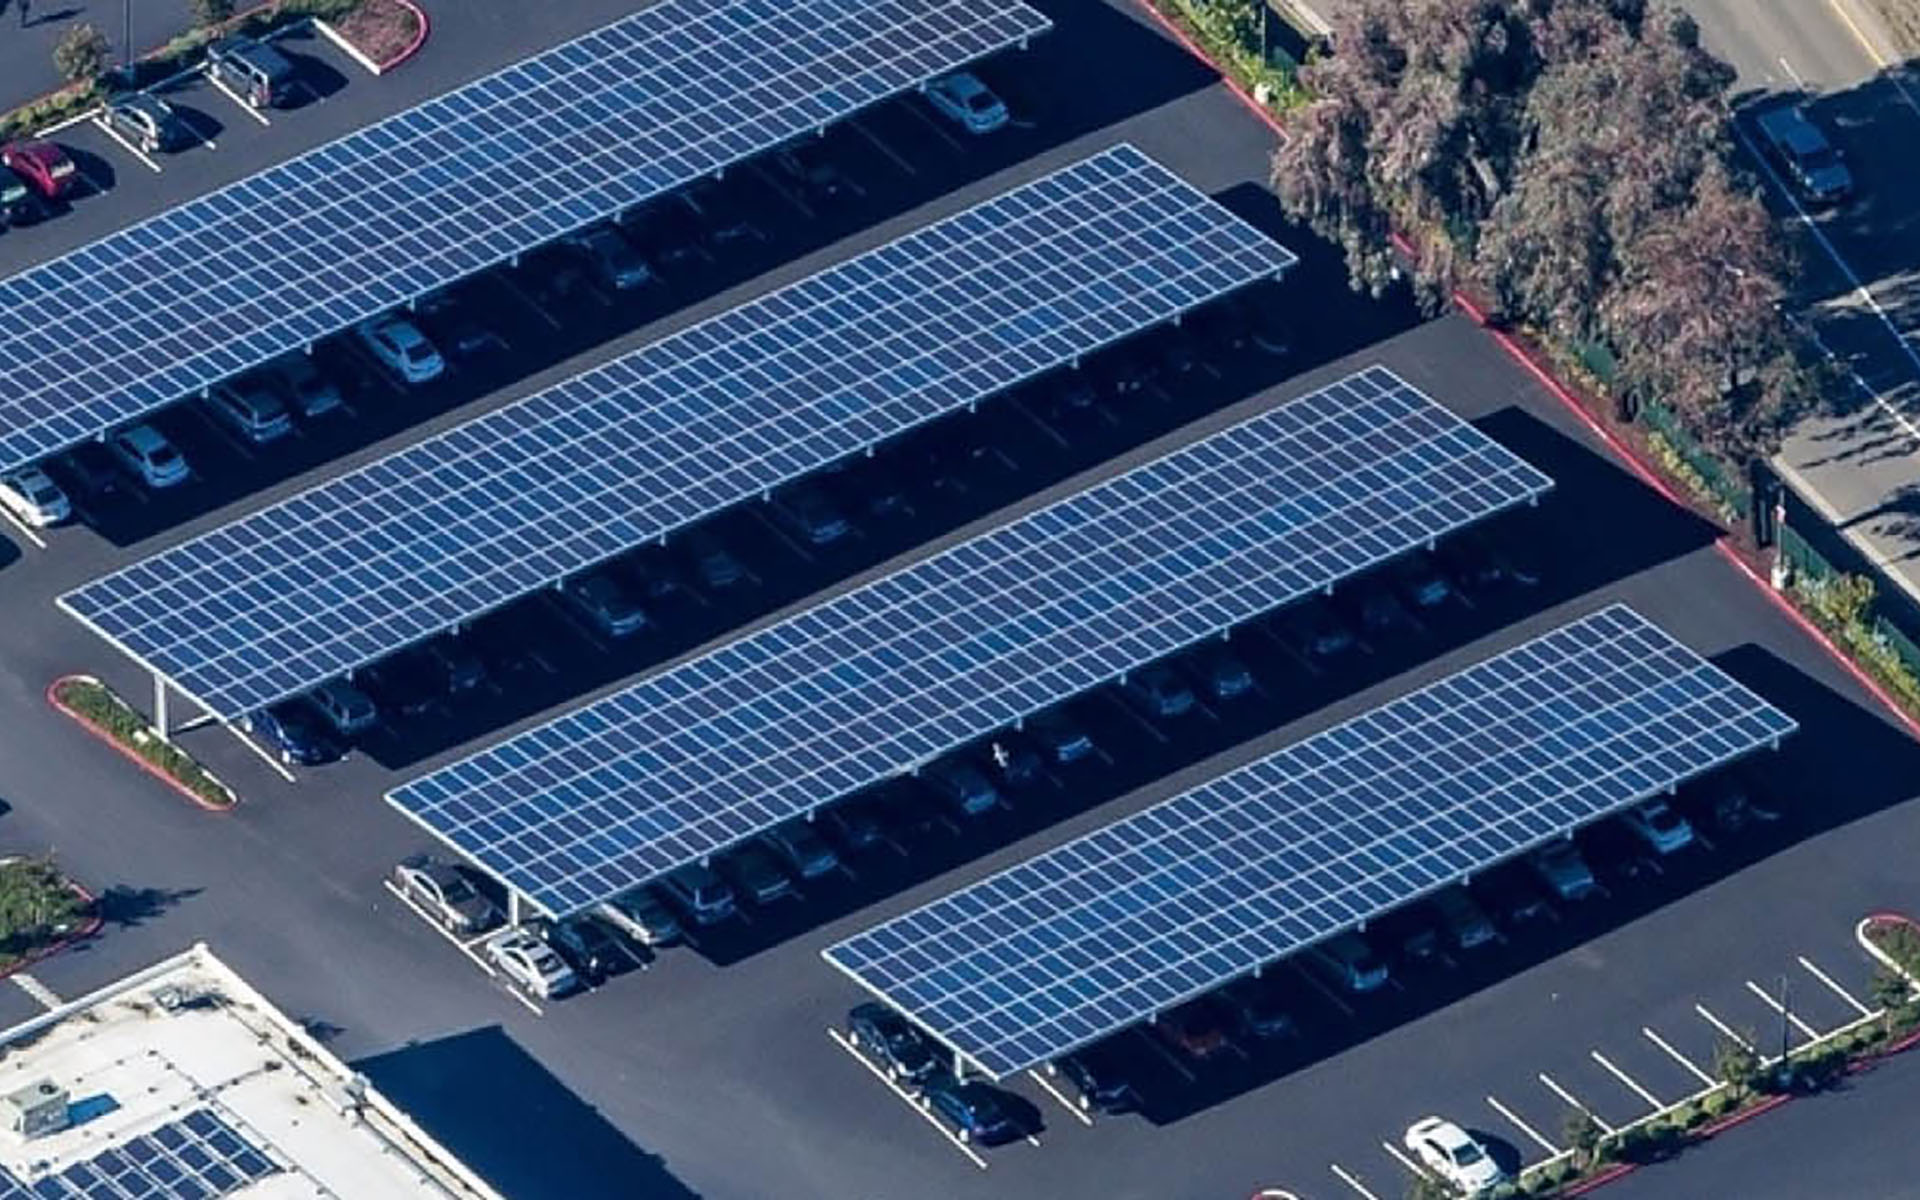 cocheras y estacionamientos solares, FirstPower